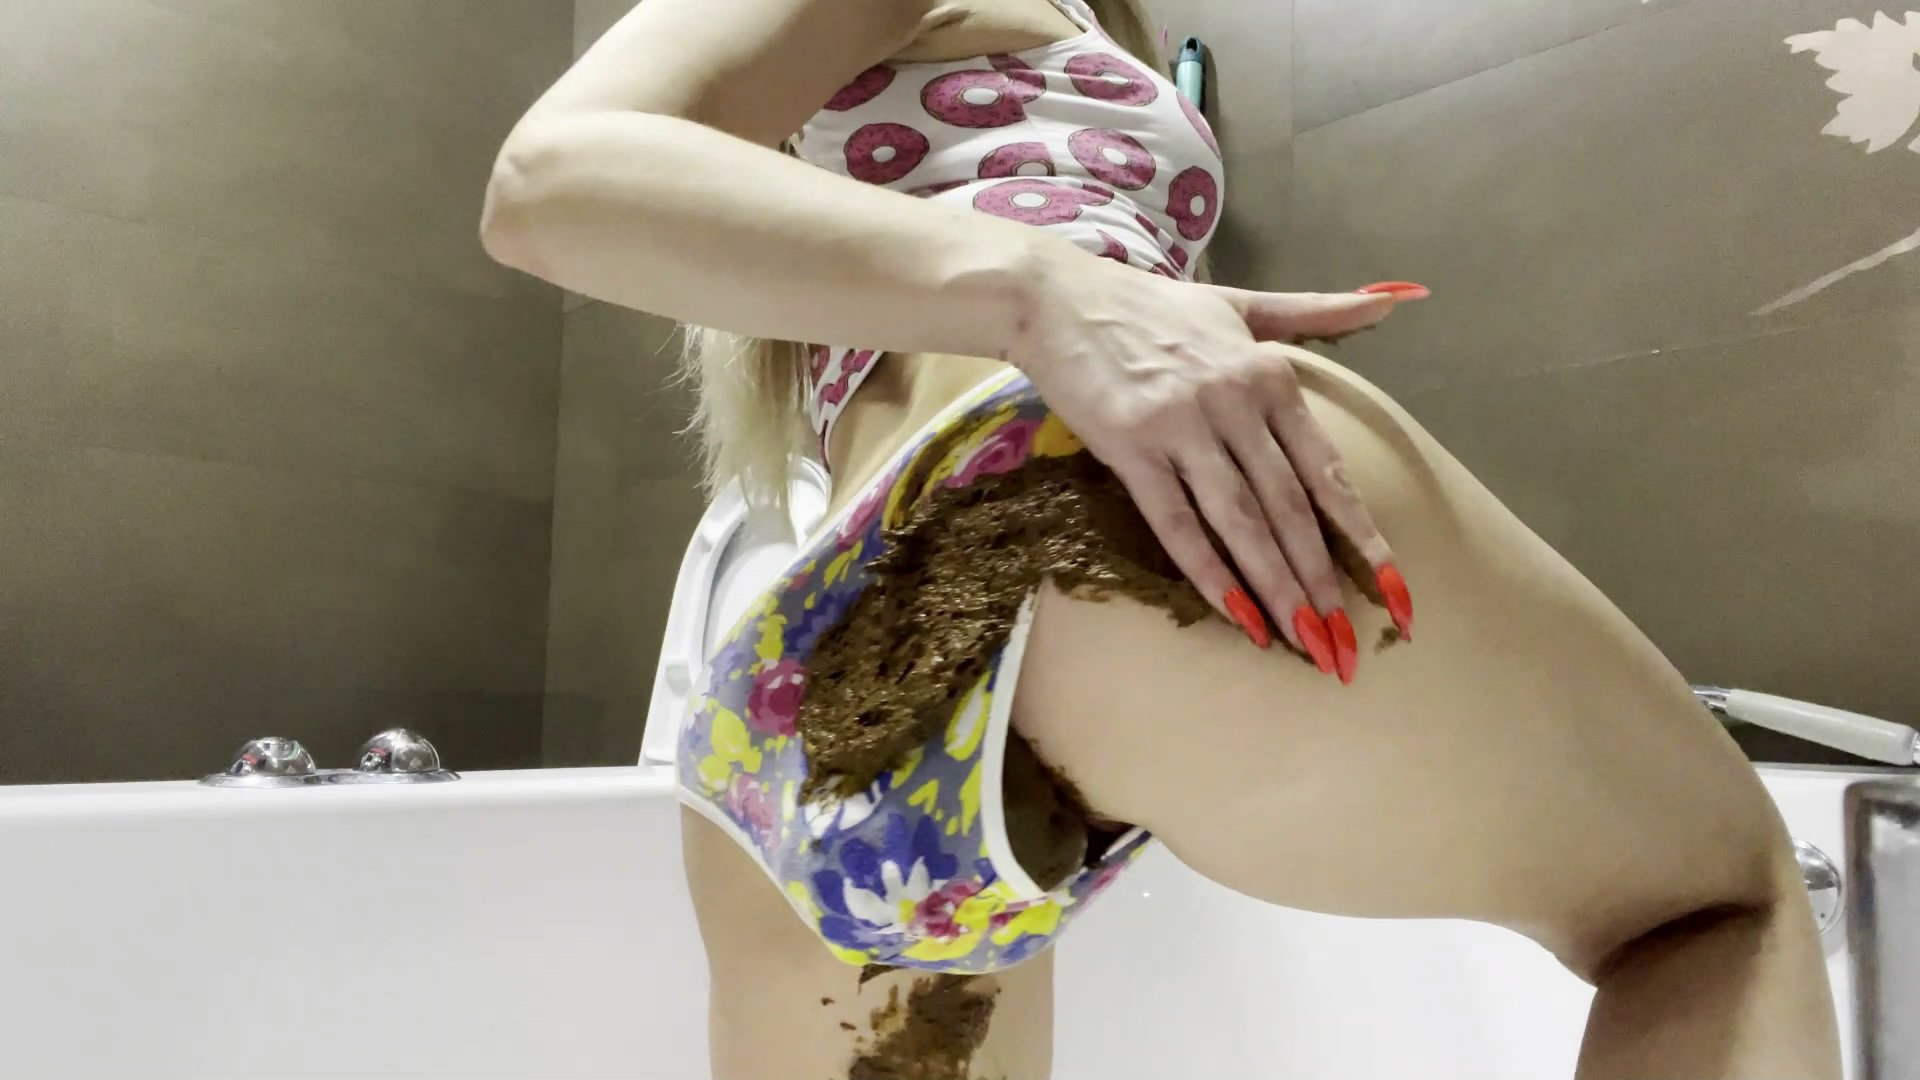 Smeared And Ruined starring in video thefartbabes ($16.99 ScatShop) – Pee